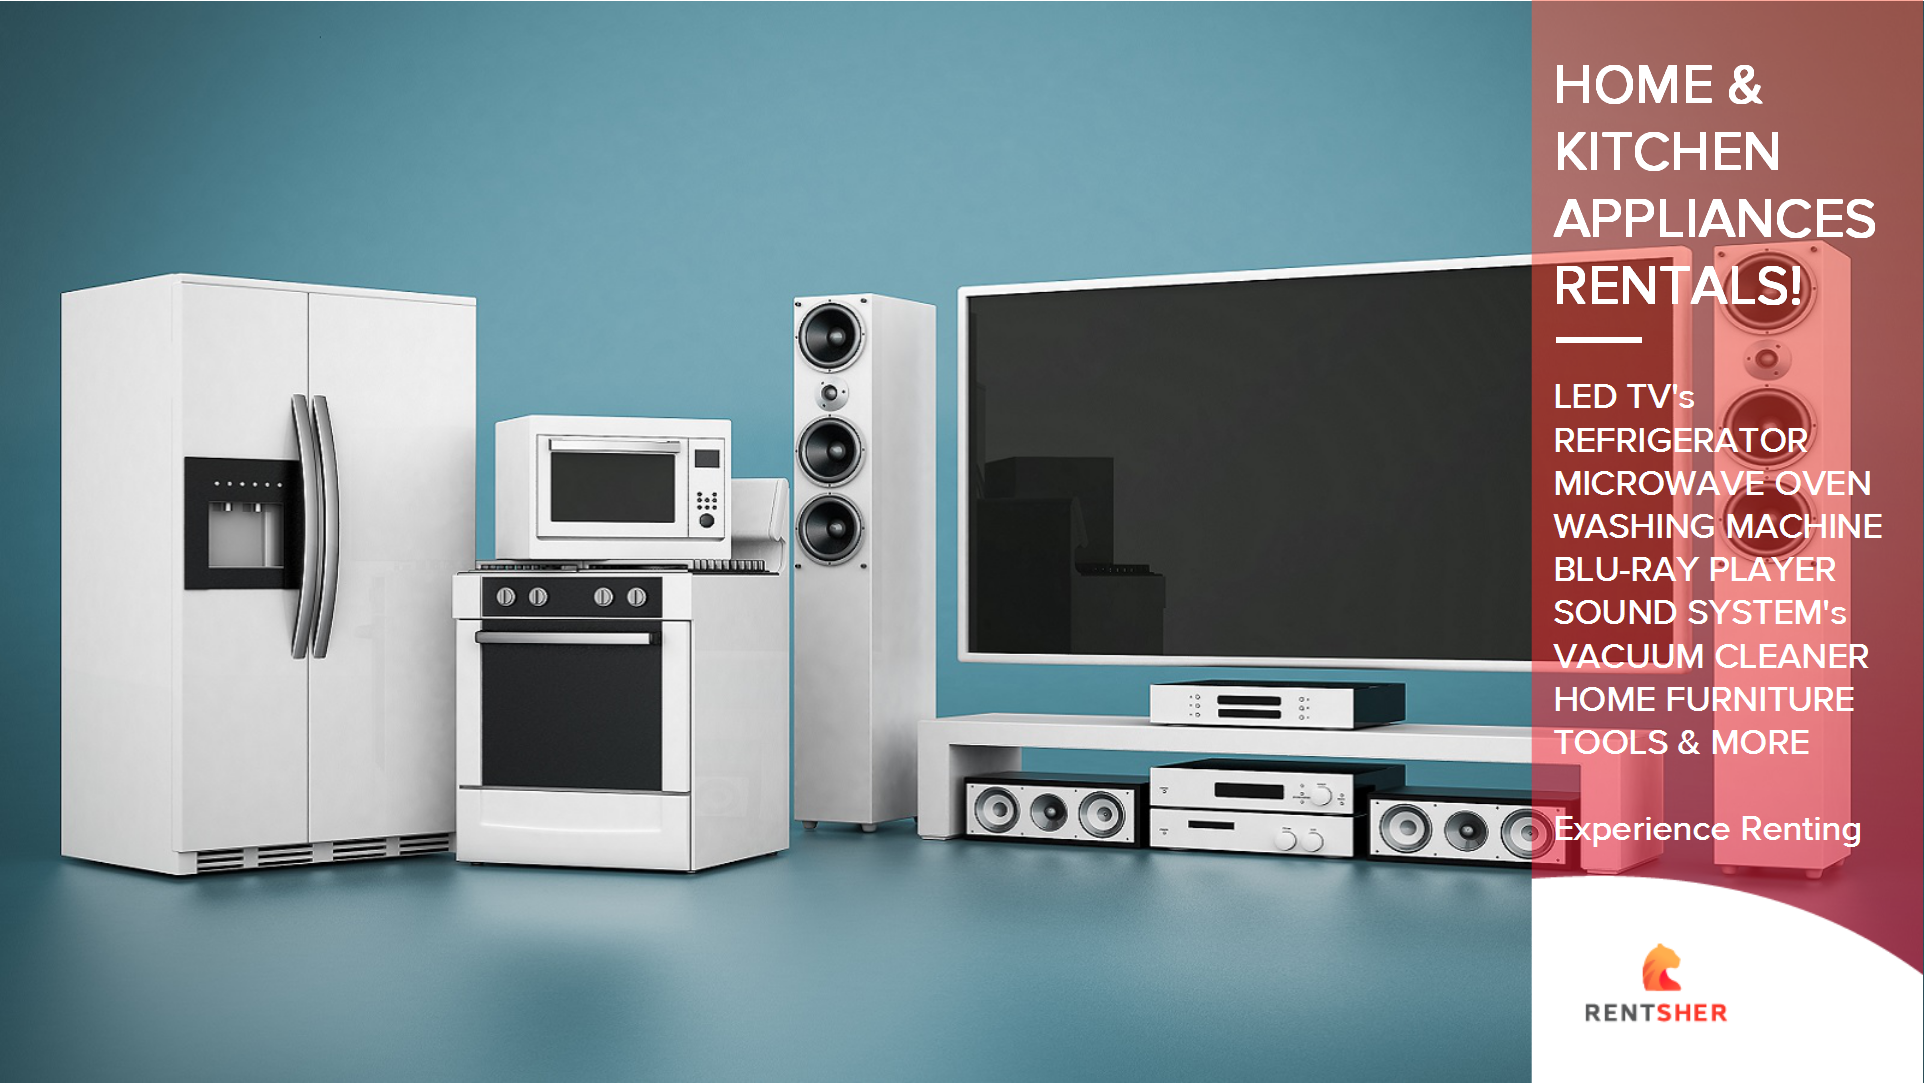 RentSher introduces wide range of Home & Kitchen Appliances on Rent ...